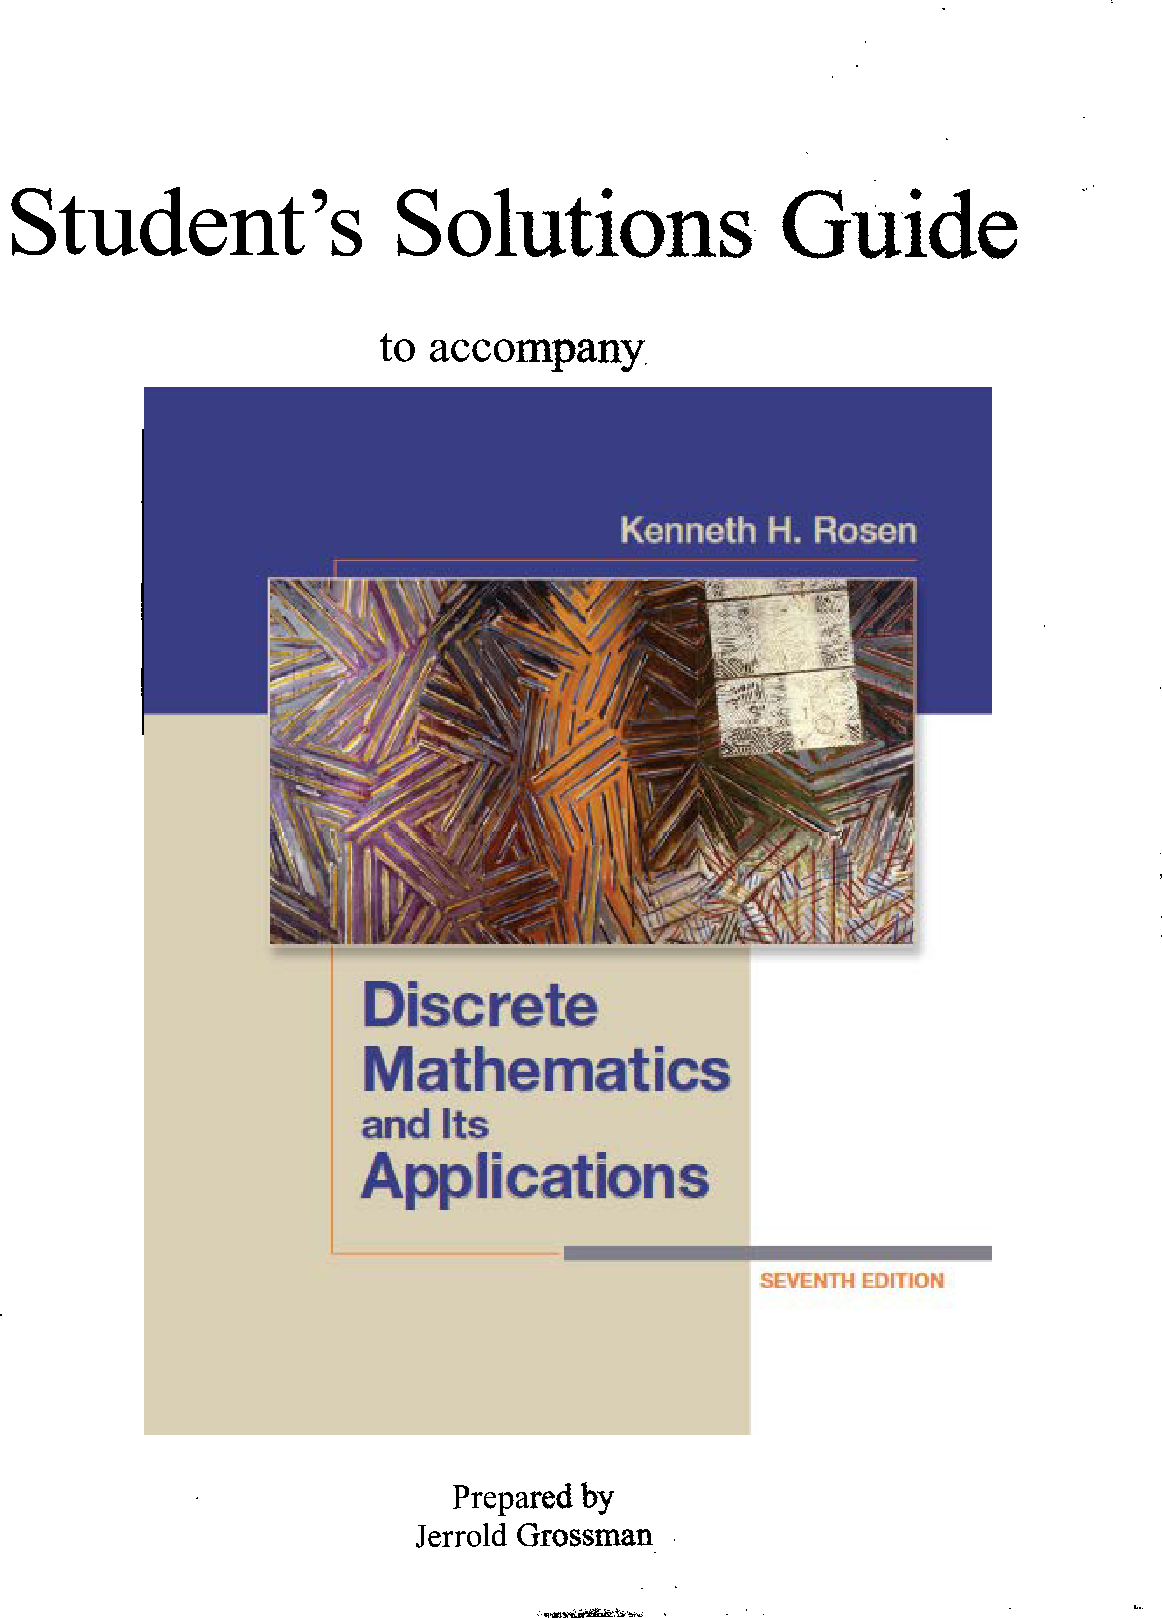 discrete mathematics and its applications 7th edition solutions manual pdf